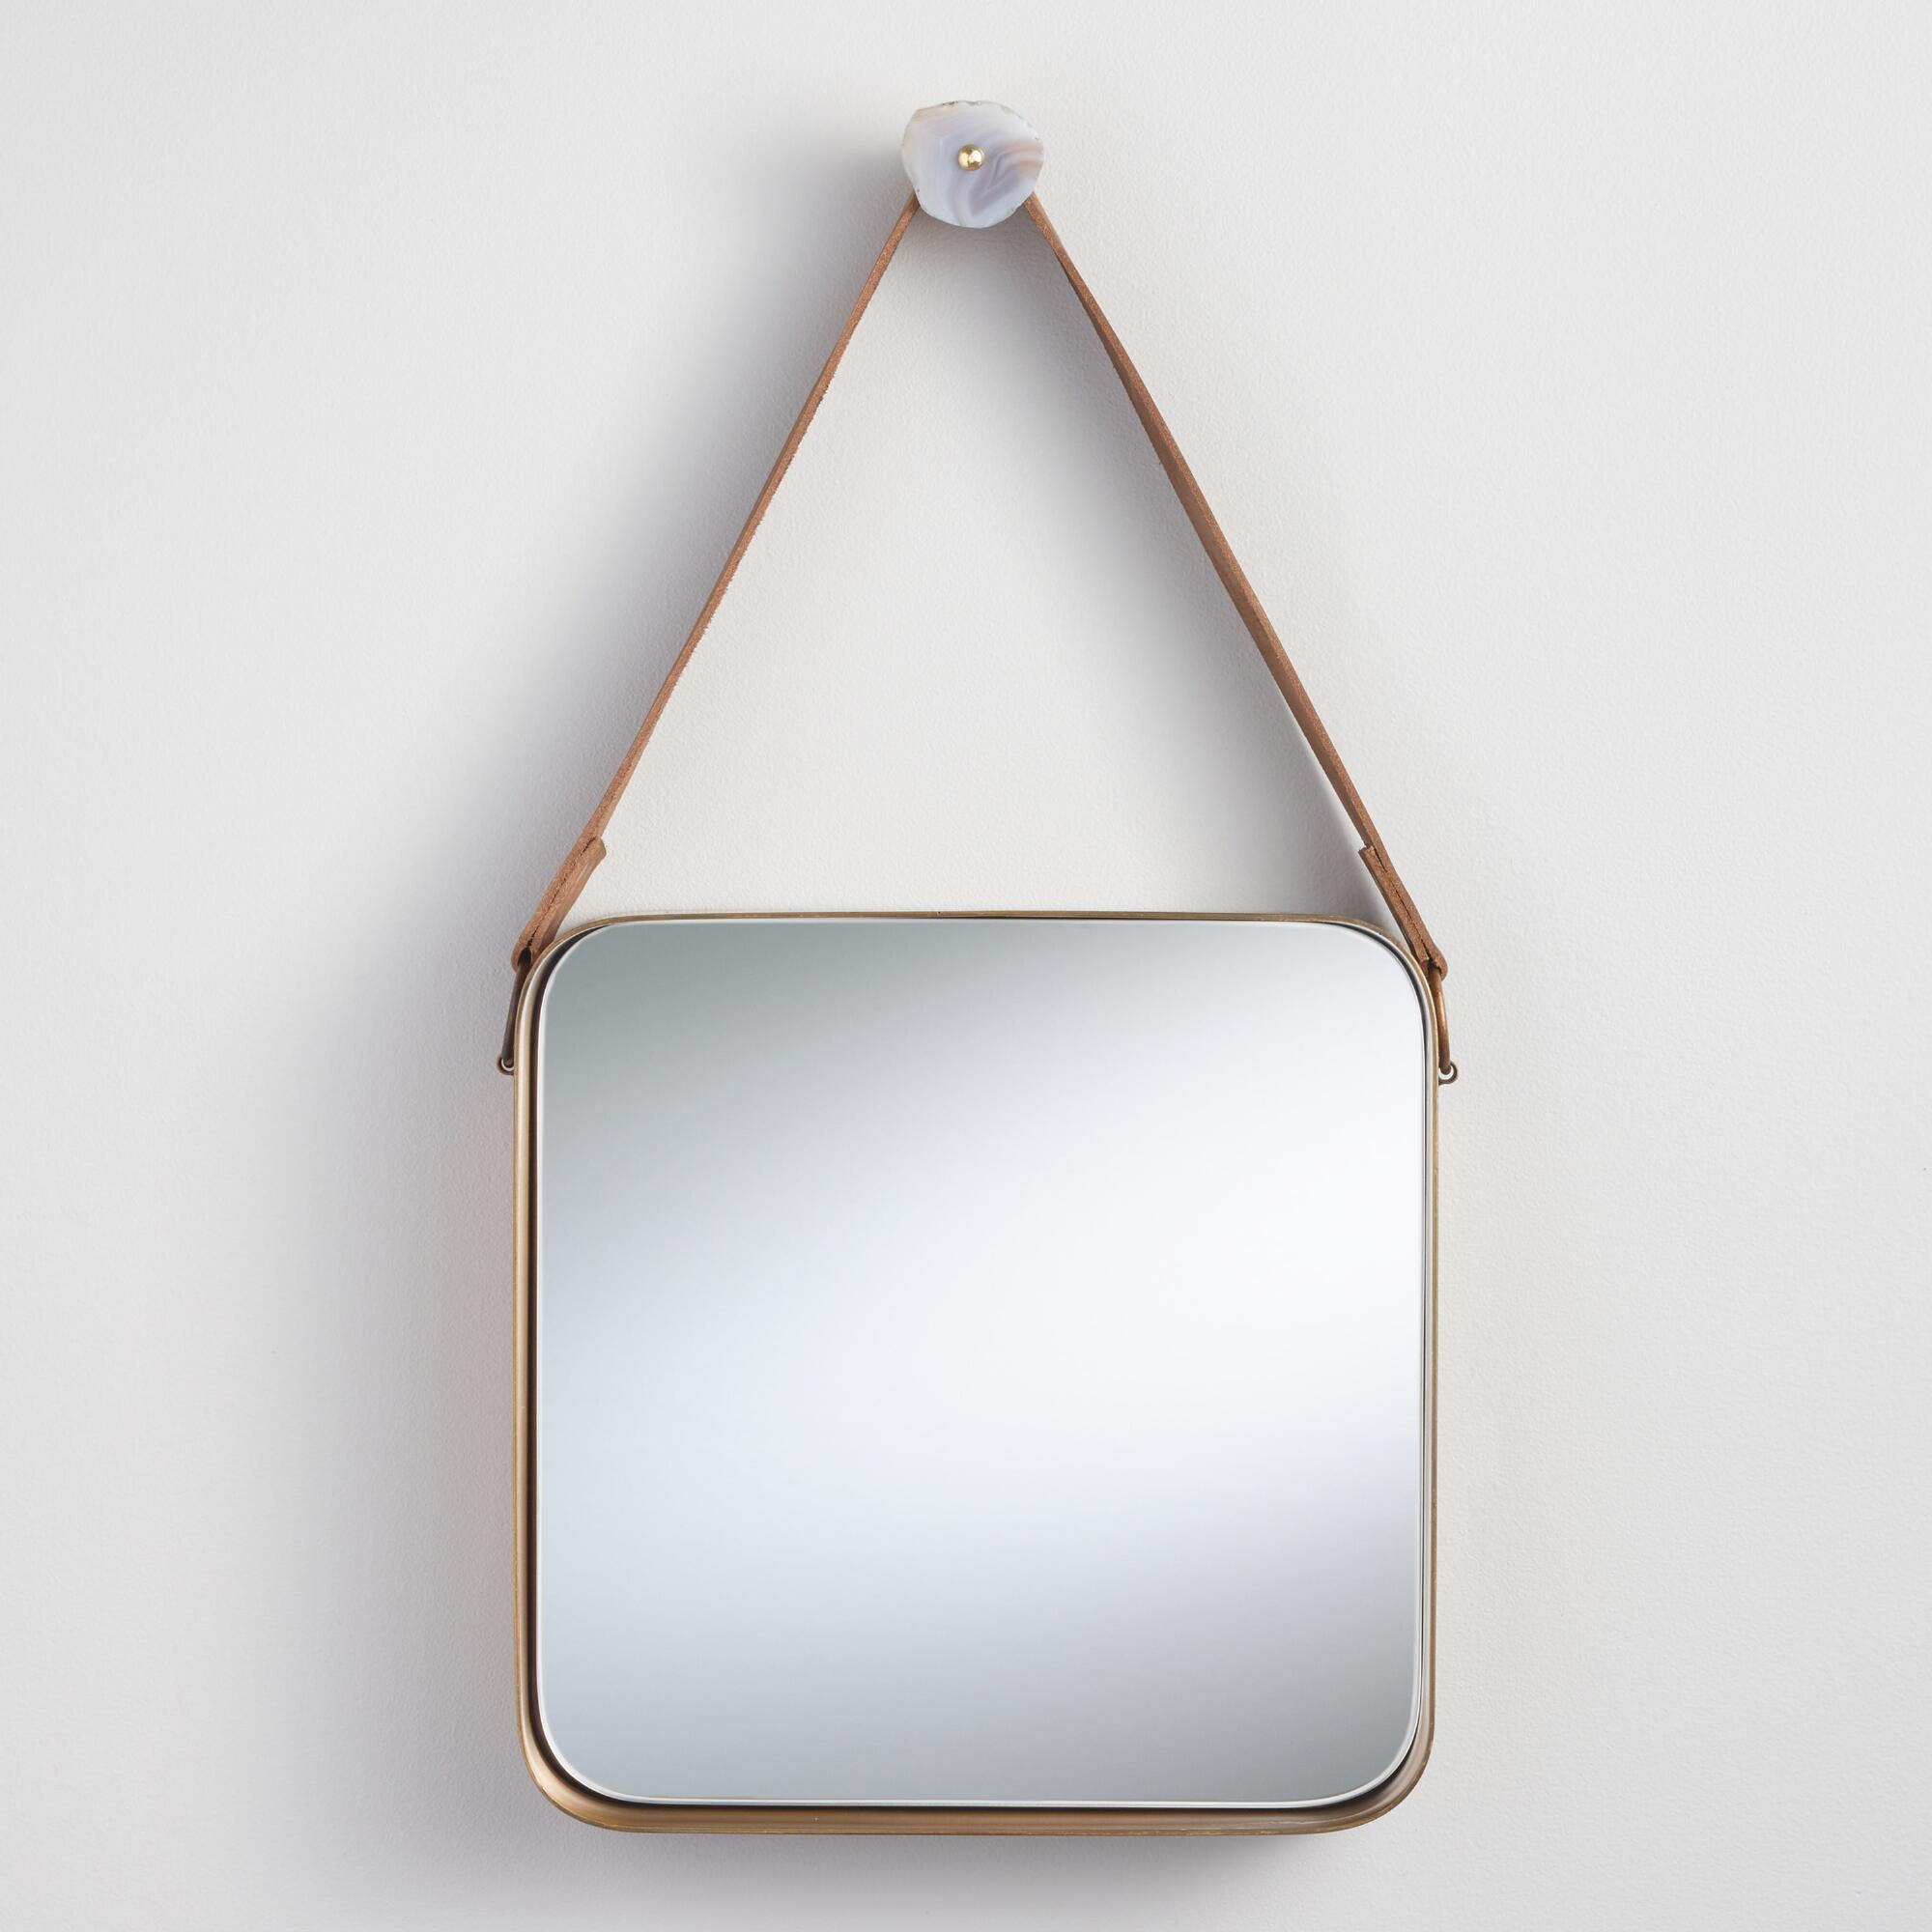 Brass metal mirror with leather strap world market amipublicfo Gallery